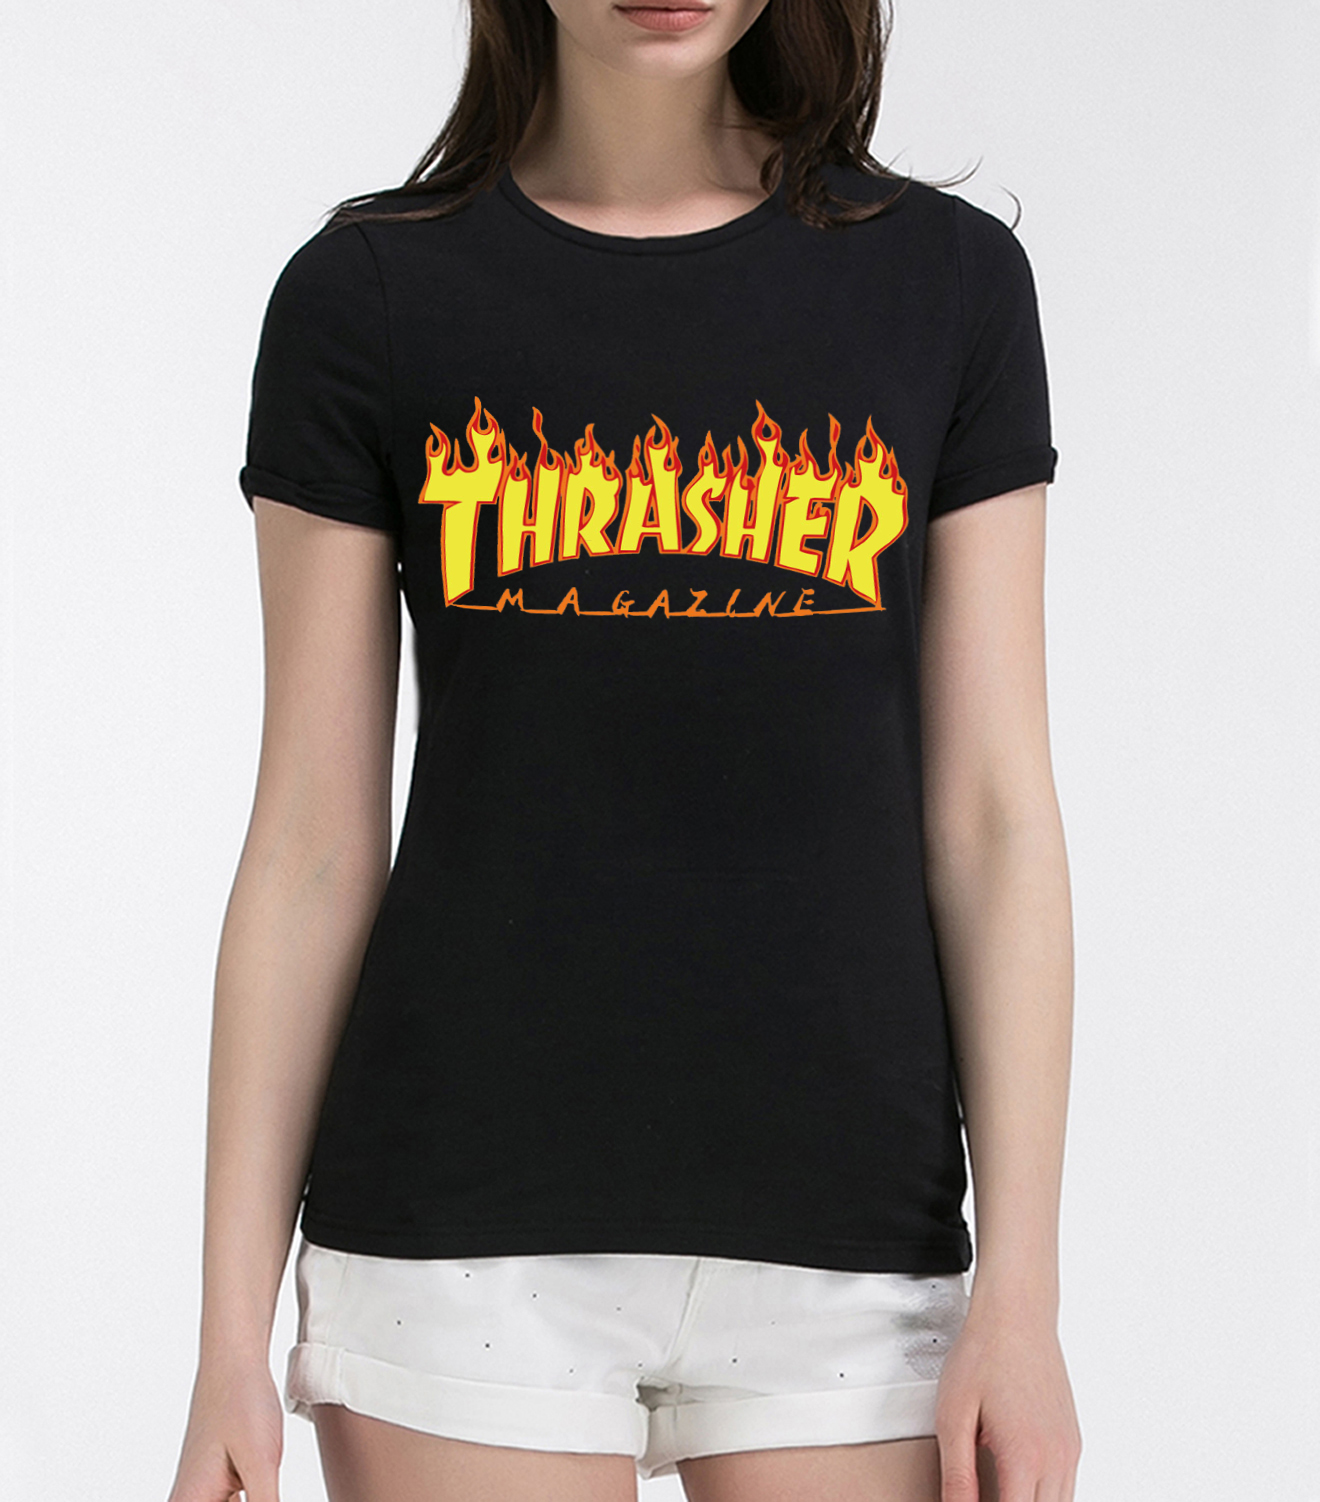 Fire text printed funny trasher t shirts for women 2016 for On fire brand t shirts